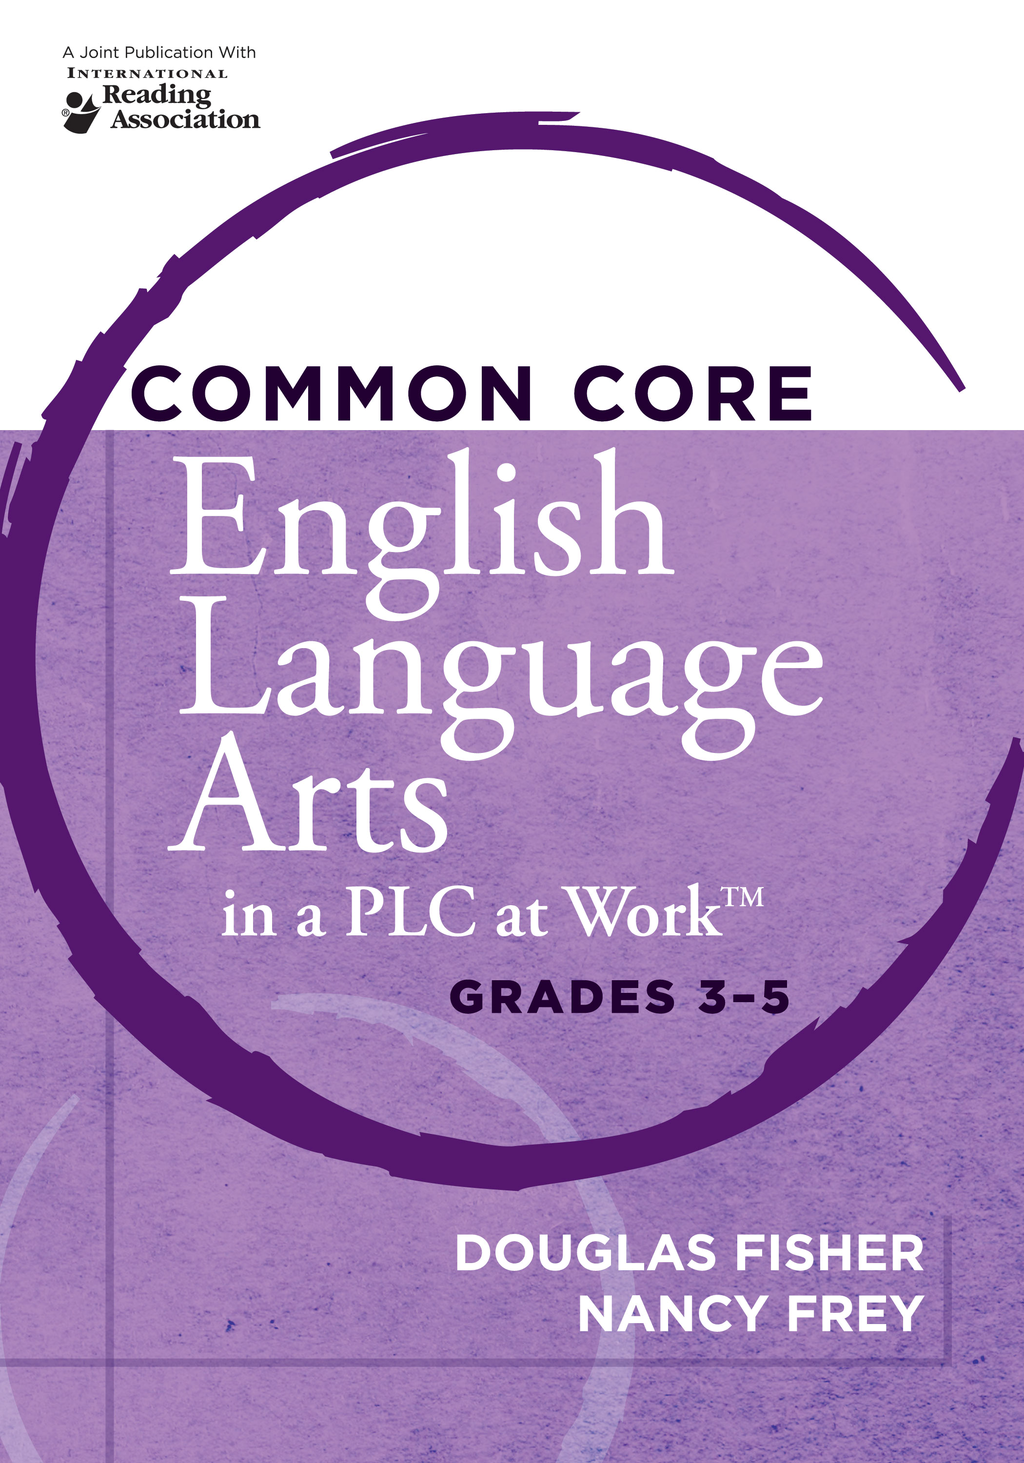 Common Core English Language Arts in a PLC at Work™, Grades 3-5